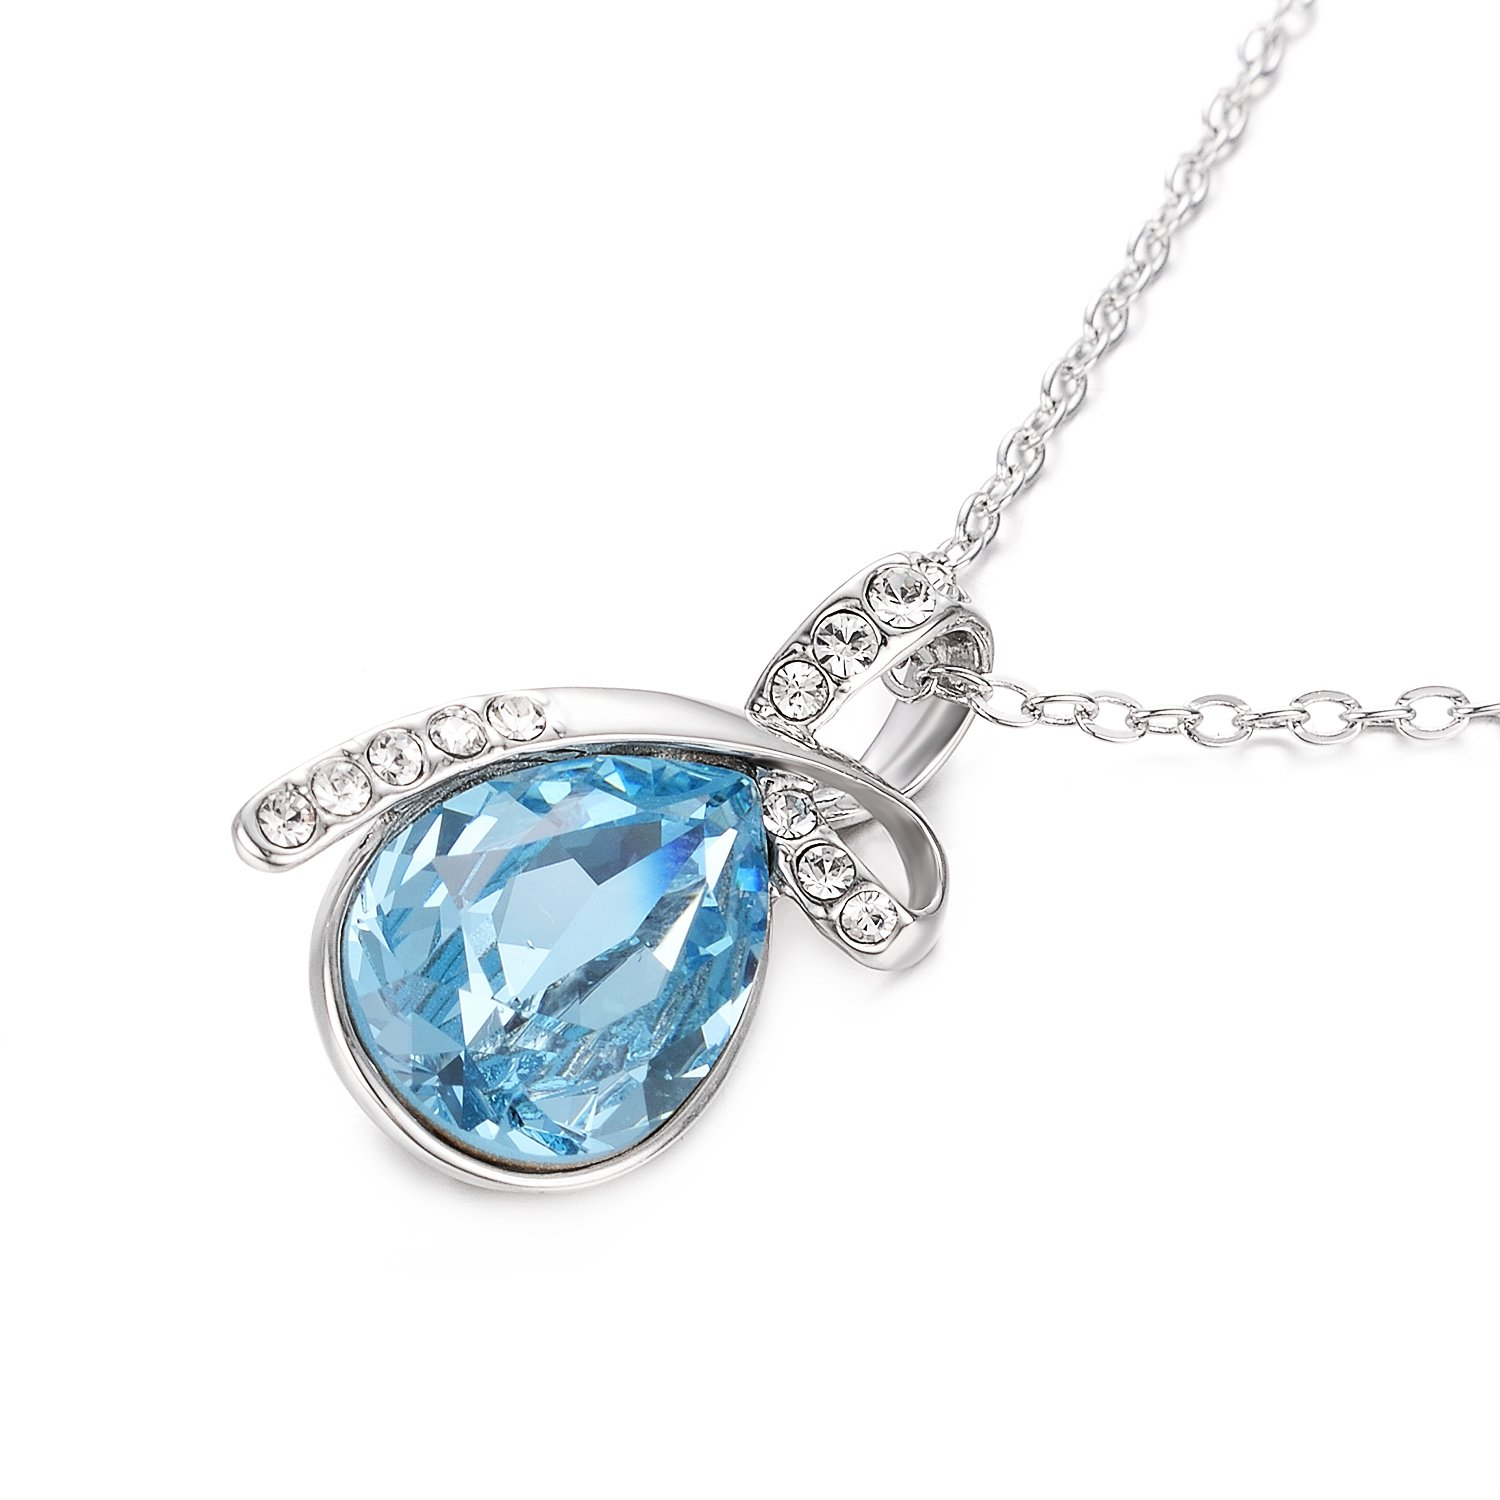 Yoursfs Blue Austrian Crystal Teardrop Pendant NecklaceHeart of the Ocean for Women Elegant Dressing and Present